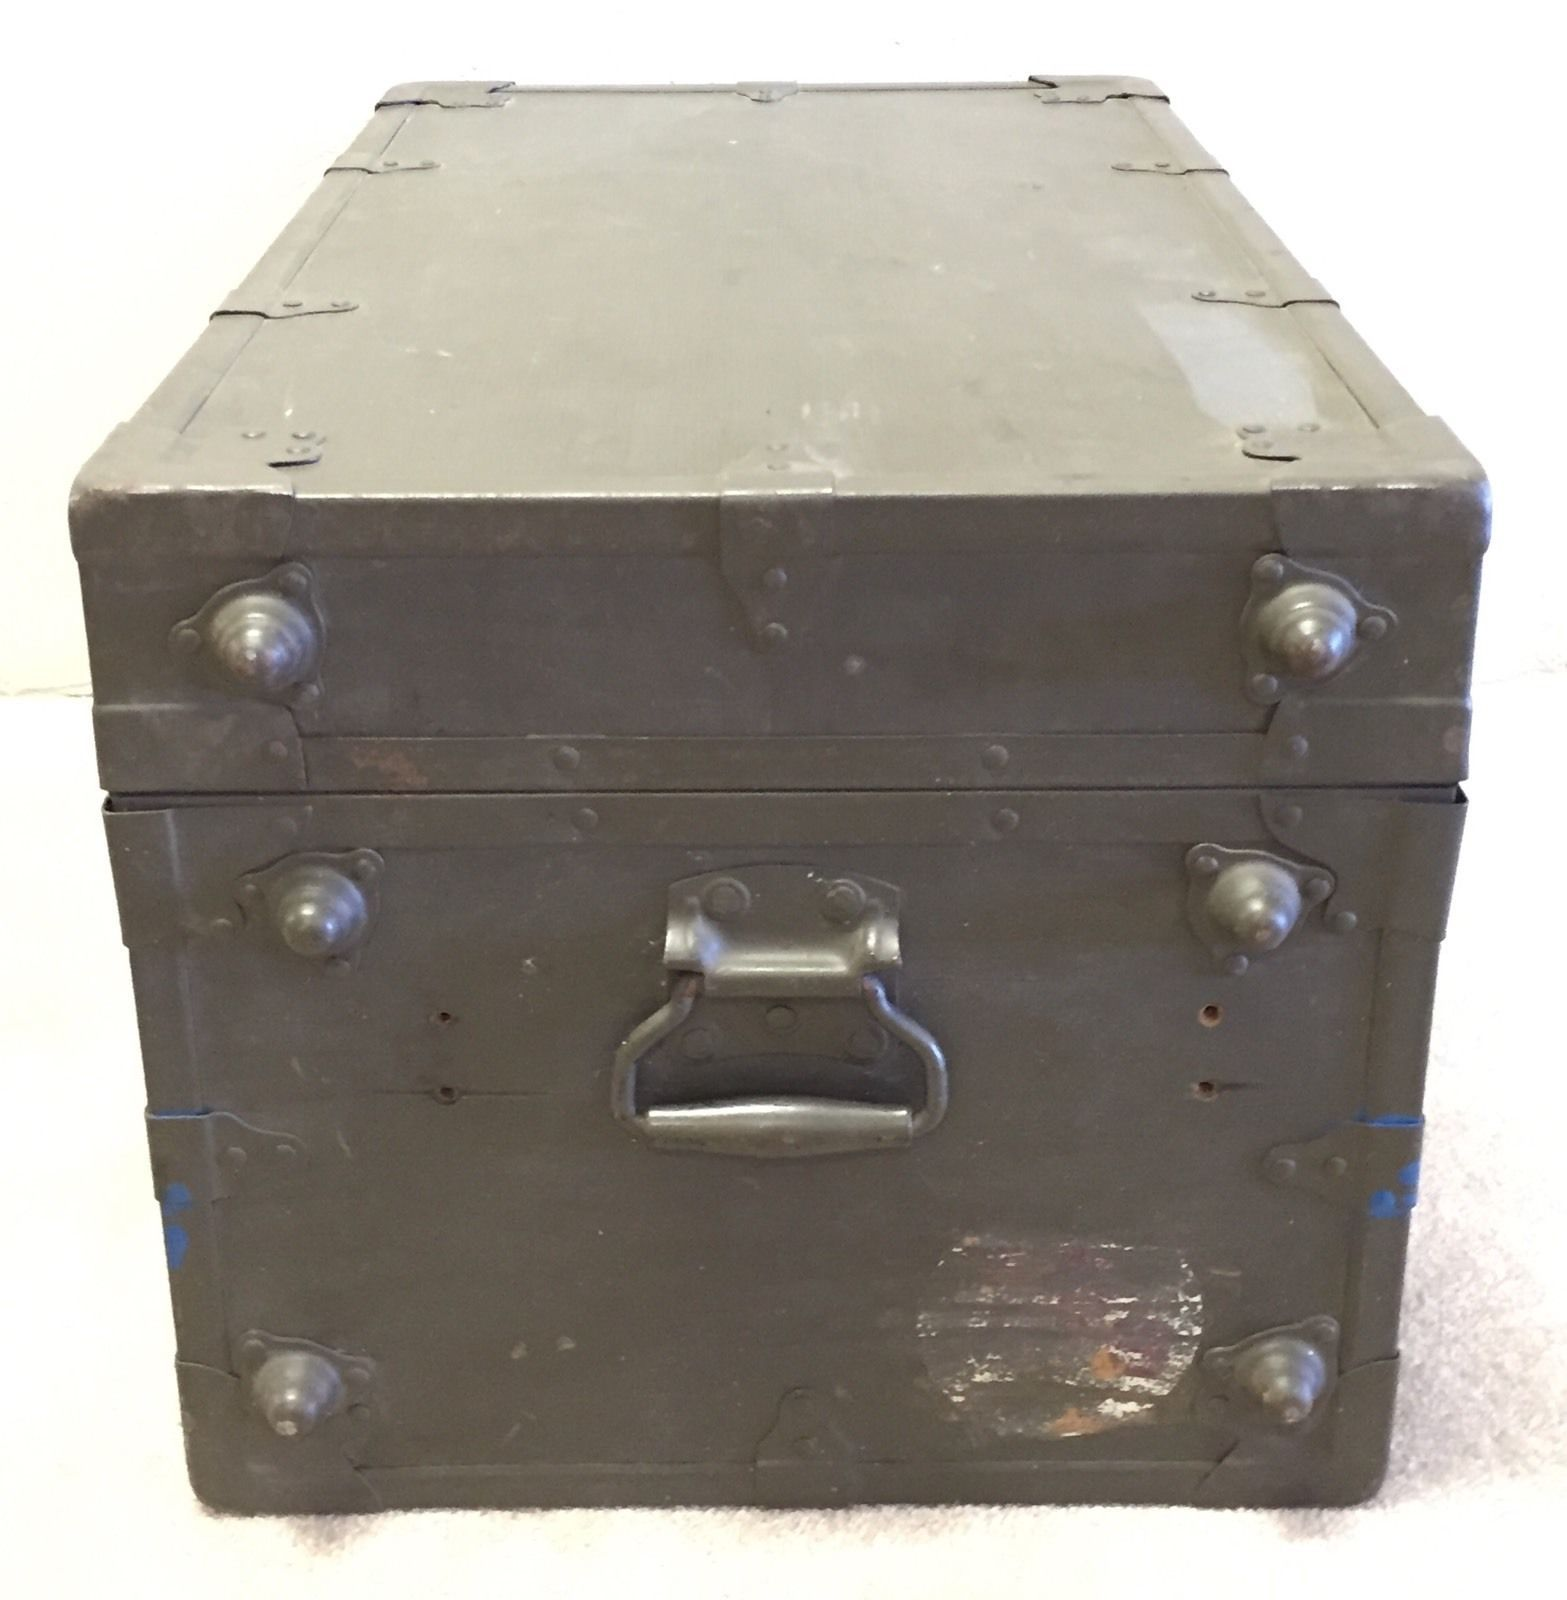 Foot Locker Storage Chest Enchanting Vintage Us Military Army Brown Xray Equipment Foot Locker Trunk Review